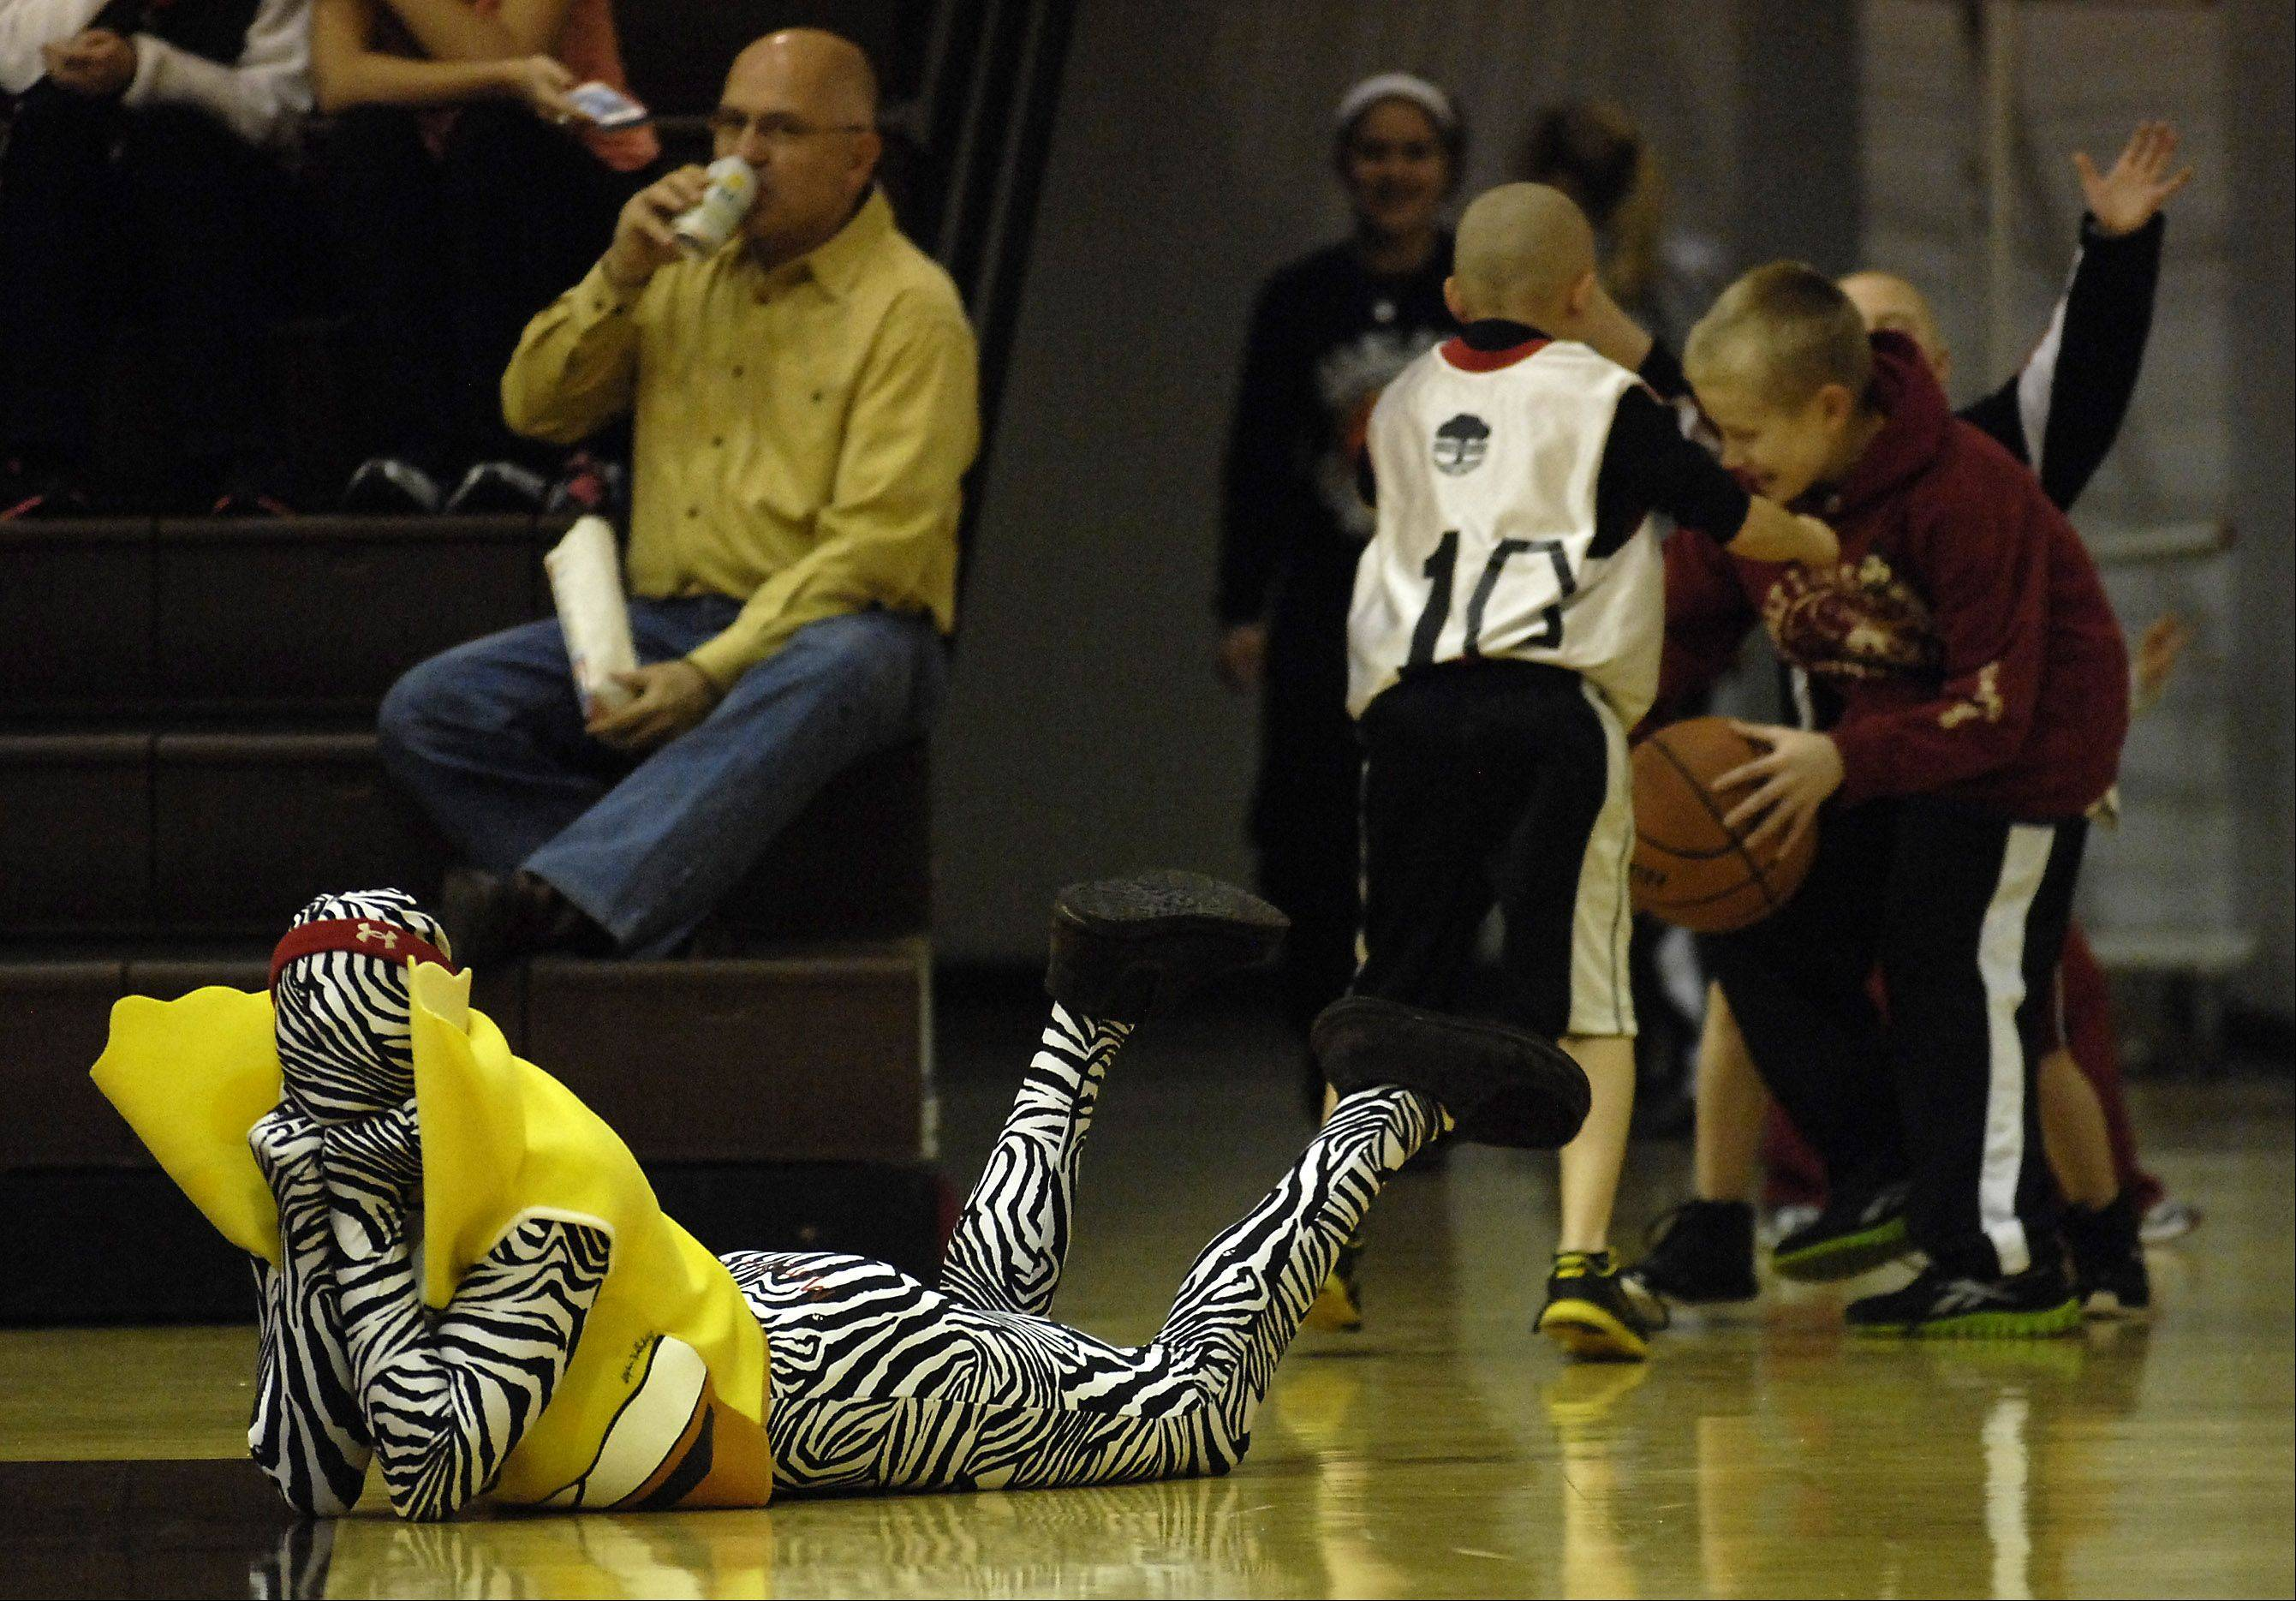 Nick Corpolongro, 18, of Huntley lays on the court before the championship of the Jacobs Holiday Tournament between Huntley and Crystal Lake Central.